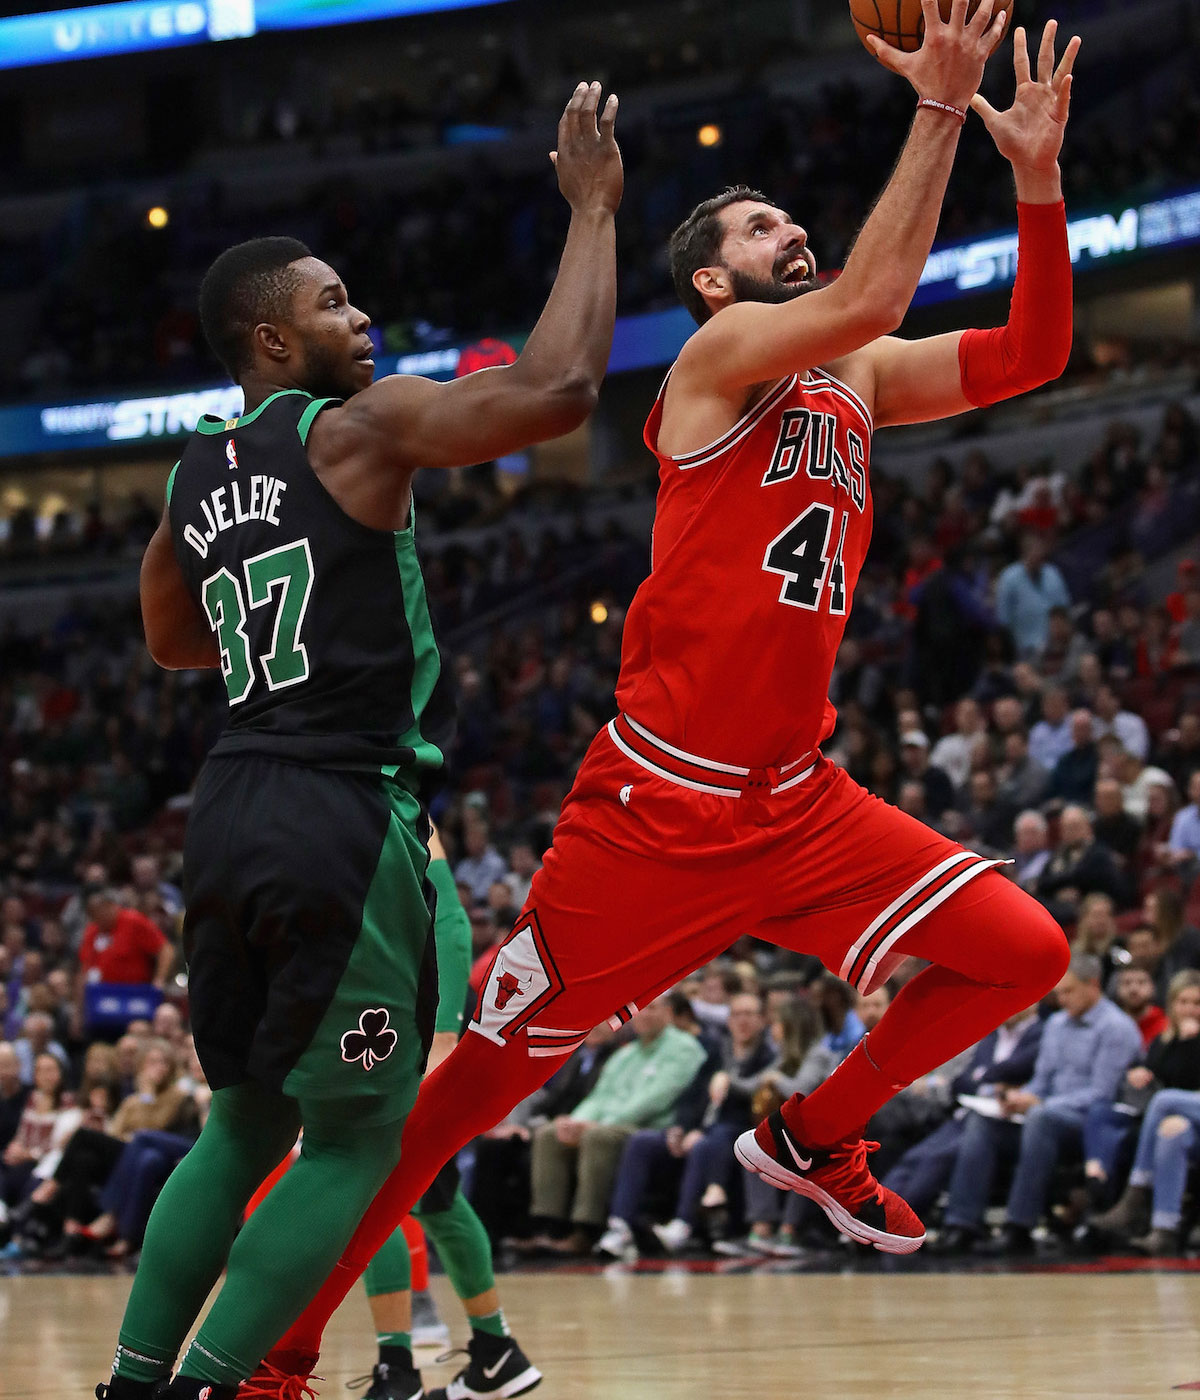 Nikola Mirotic #44 of the Chicago Bulls drives past Semi Ojeleye #37 of the Boston Celtics on his way to a game-high 24 points at the United Center on December 11, 2017 in Chicago, Illinois.